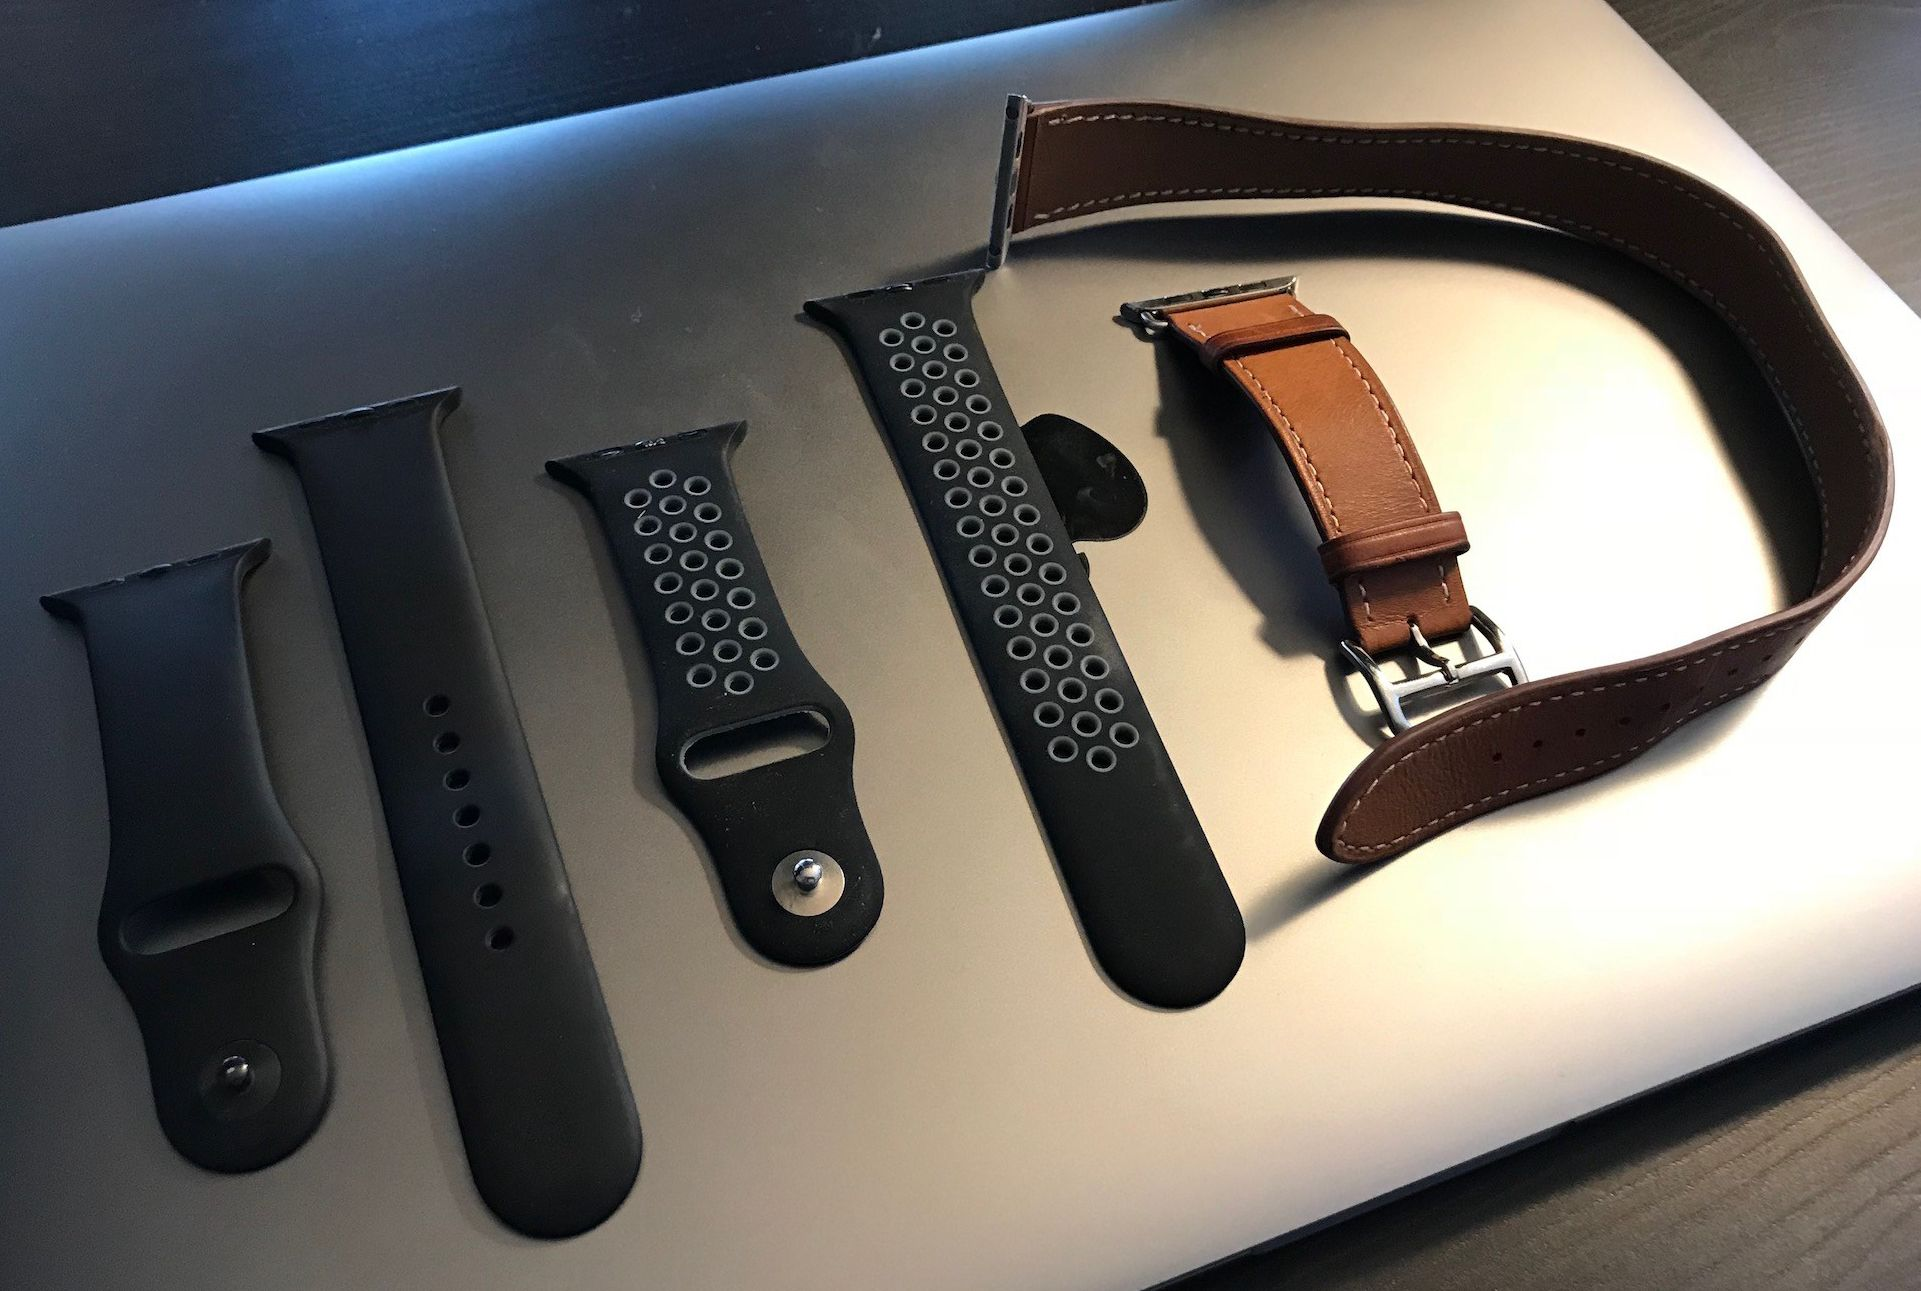 Cheap and high-quality Apple Watch bracelets can be found at Amazon.de!